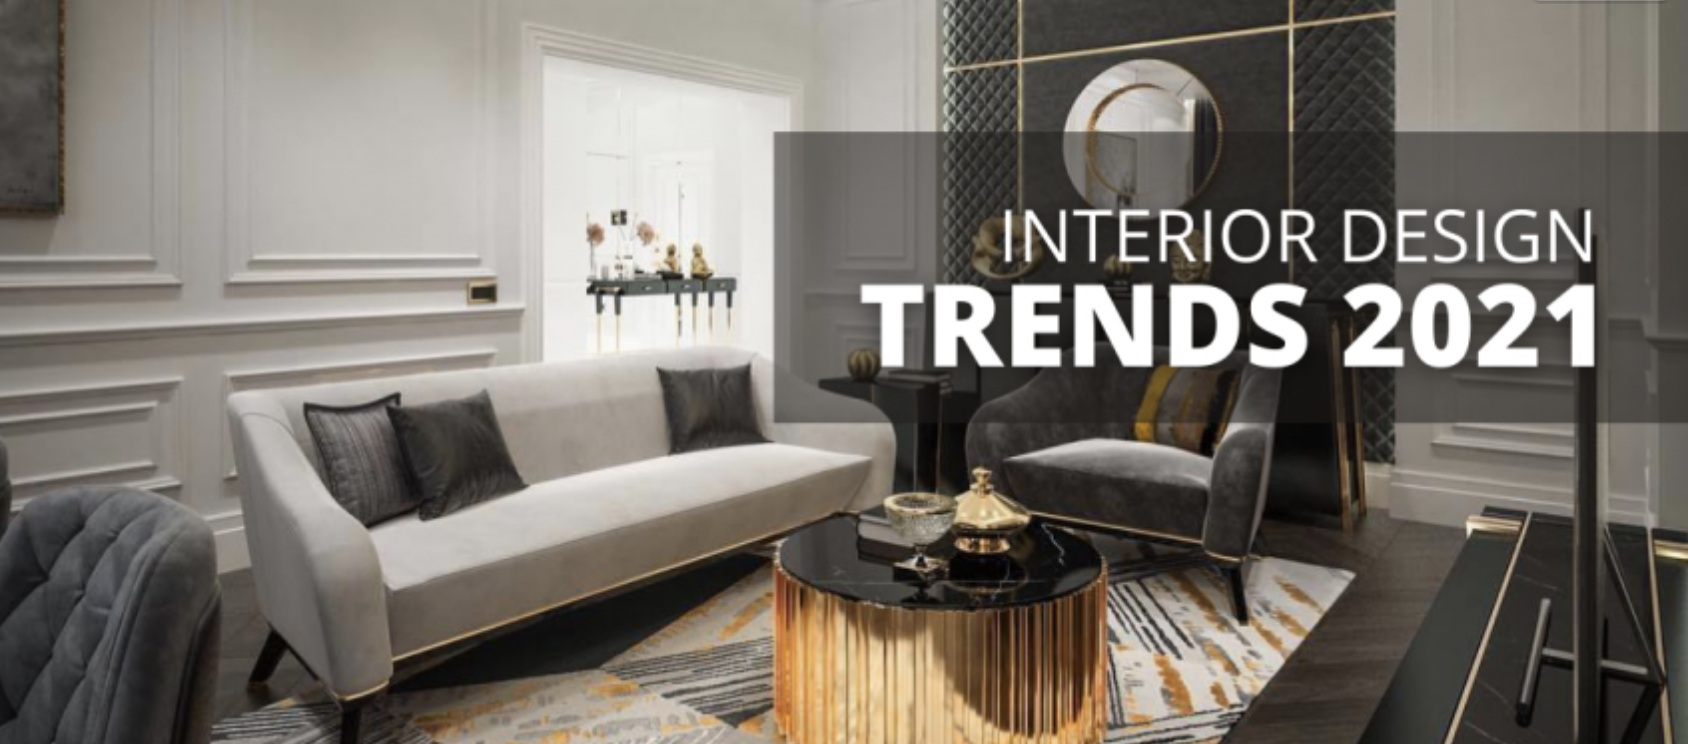 The Interior Design Trends to Know for 2021